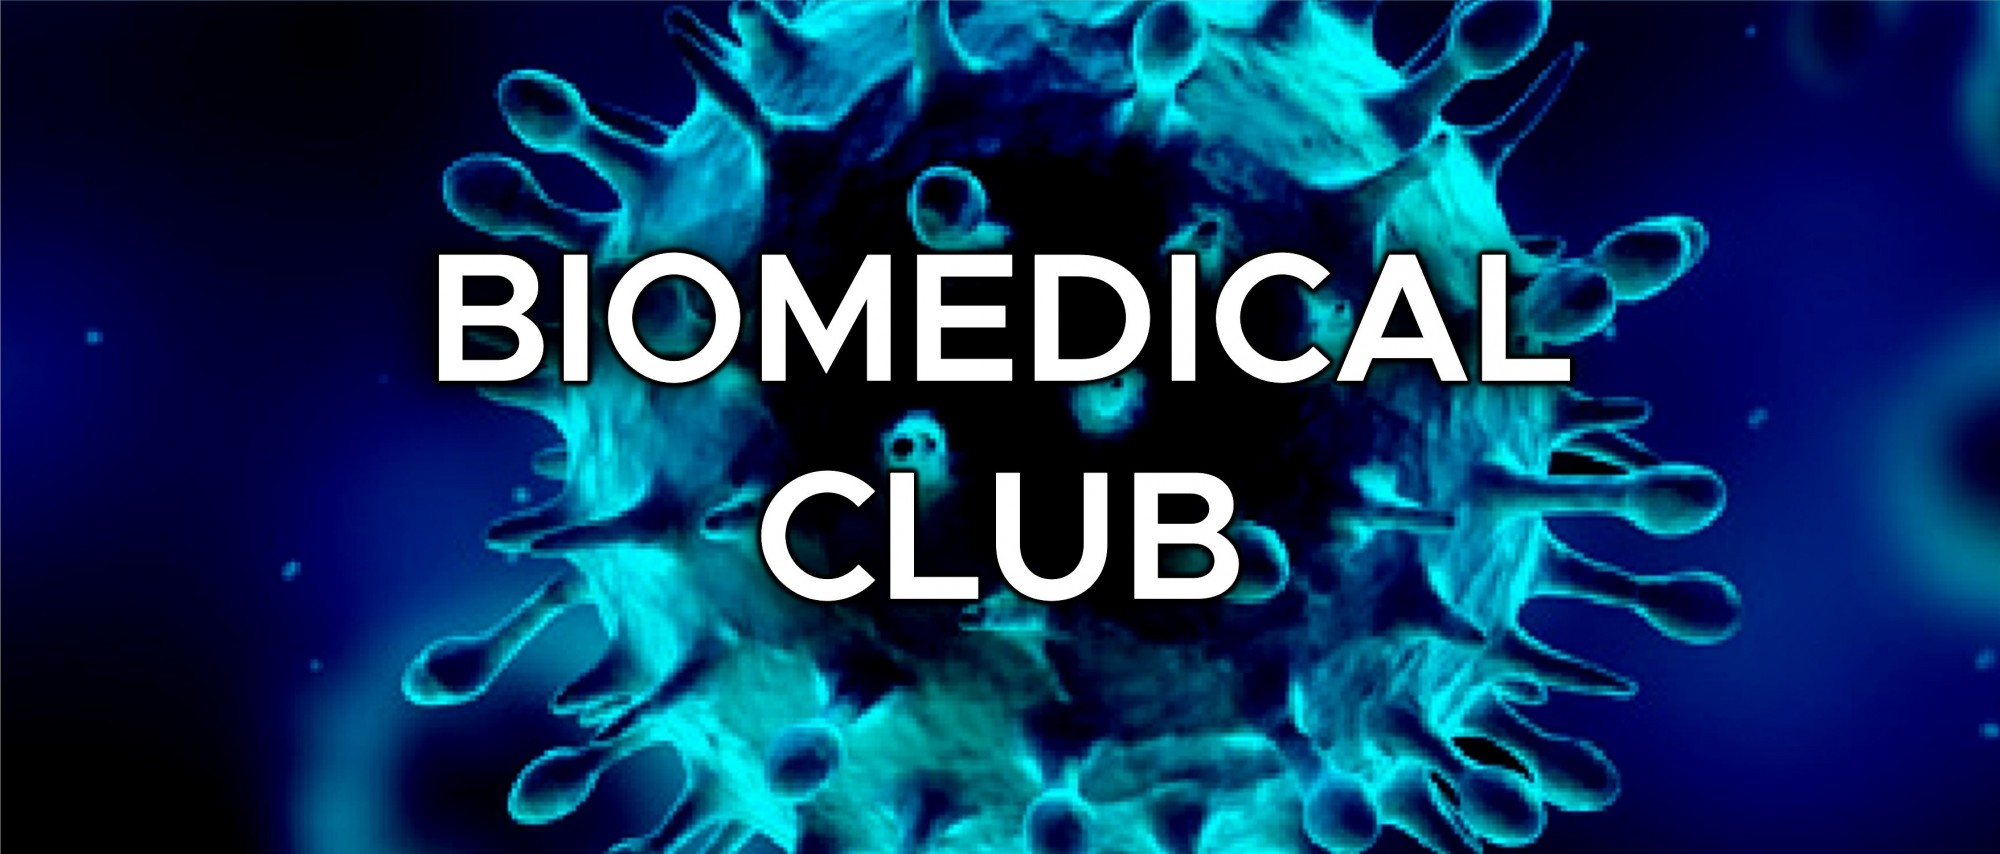 Biomedical Club Logo.jpg